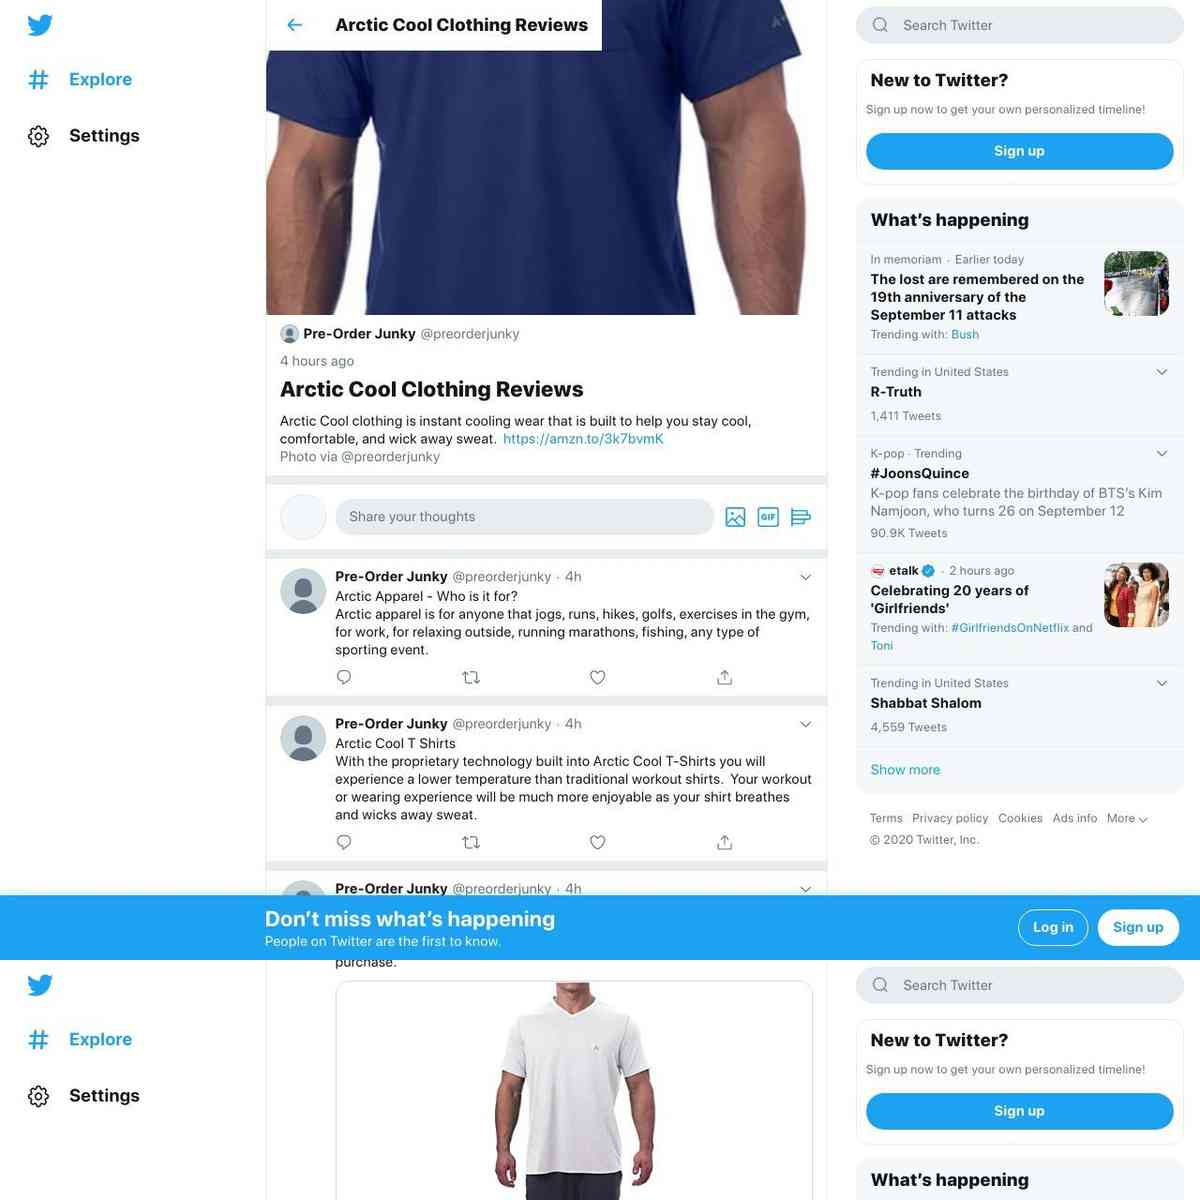 Arctic Cool Clothing Reviews